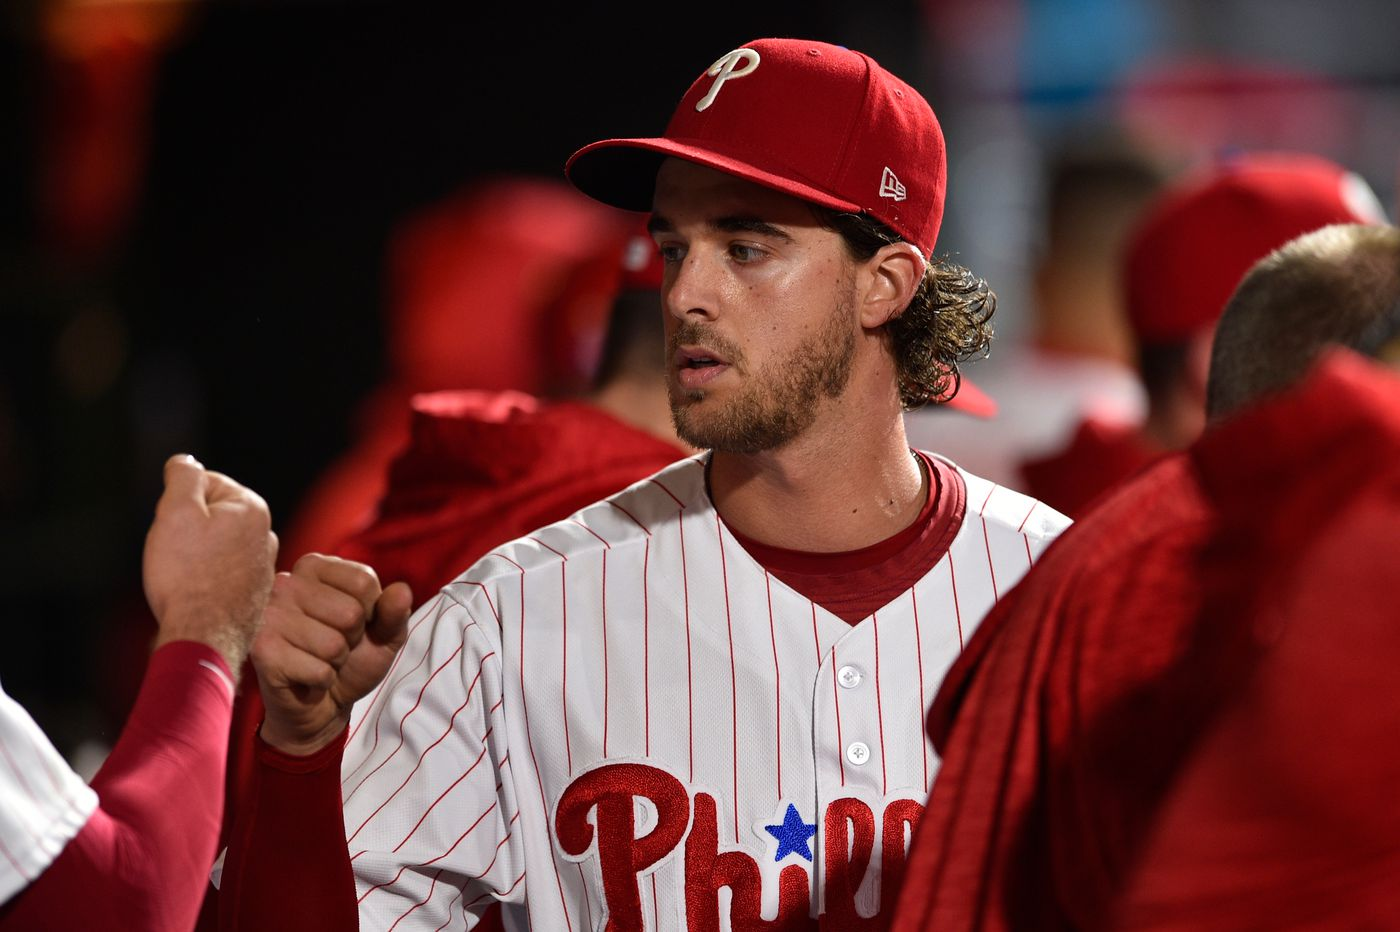 Aaron Nola will be eligible to pitch in next week's All-Star Game. Could he start?